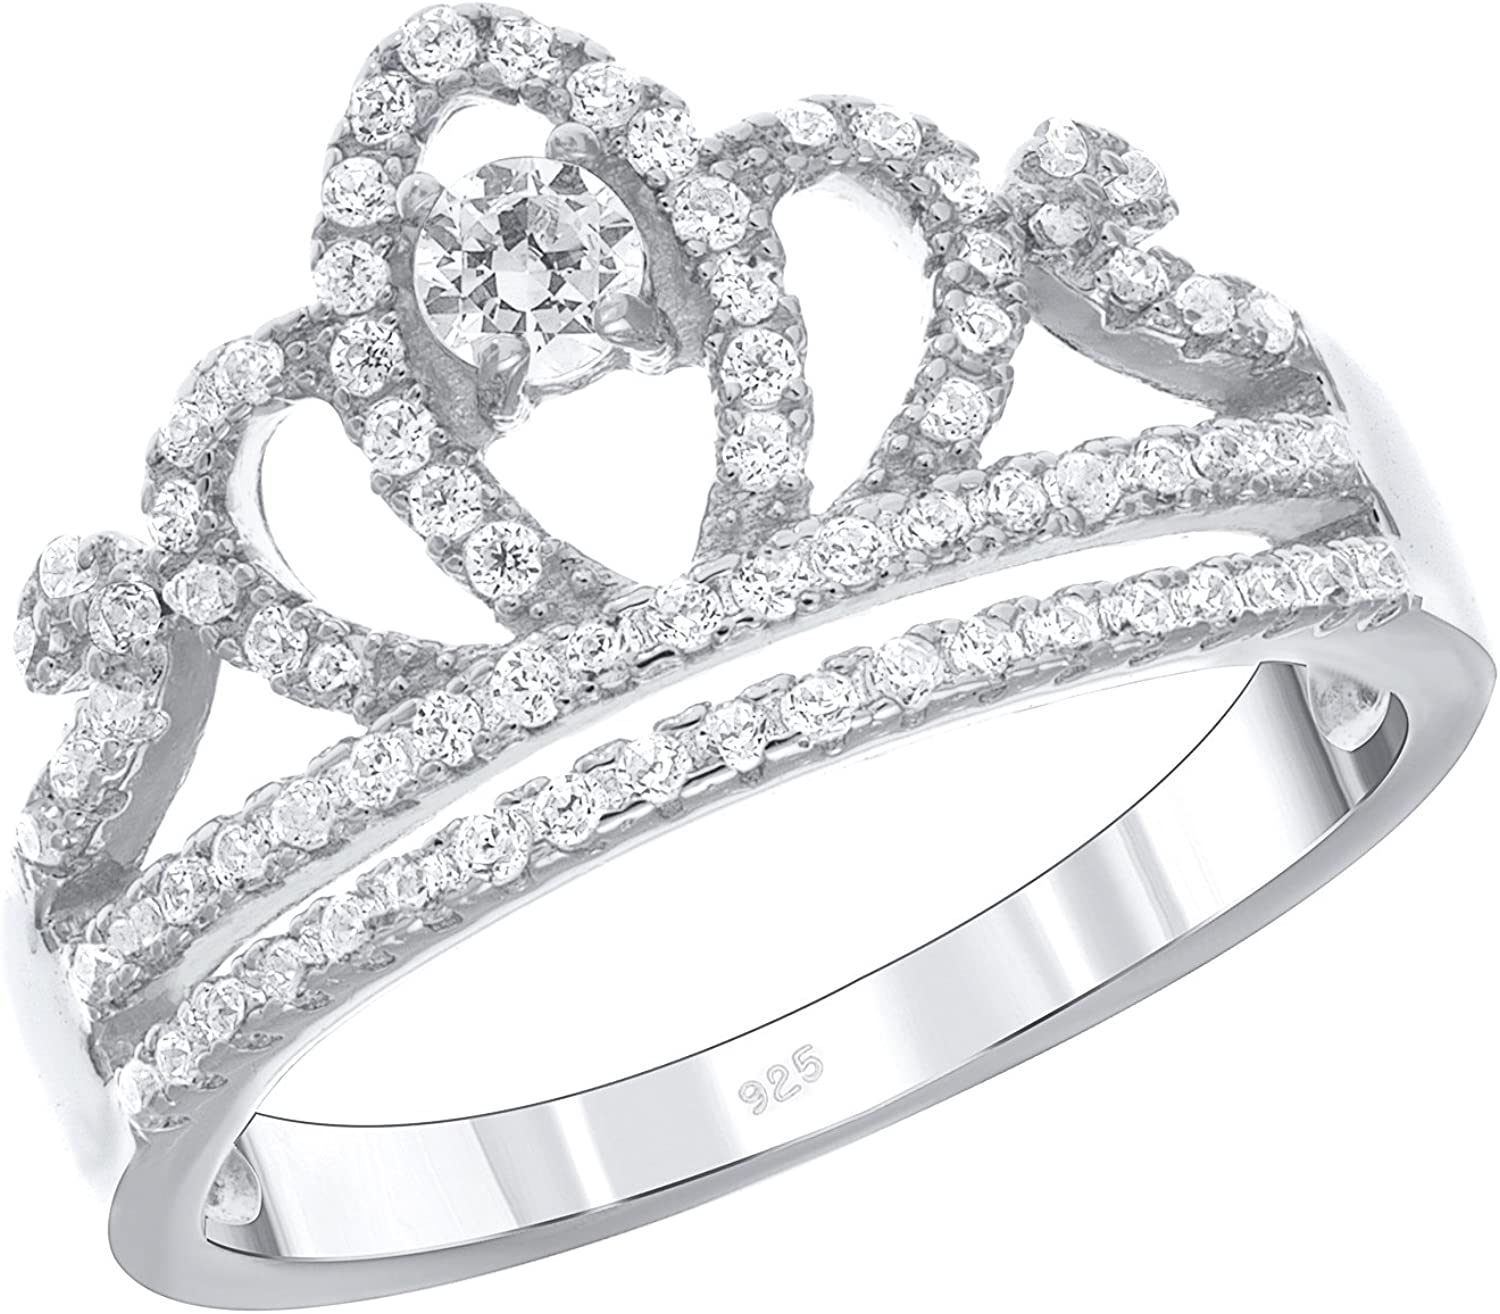 D Jewelry 925 Sterling Silver Princess Tiara Cz Crown Band Ring